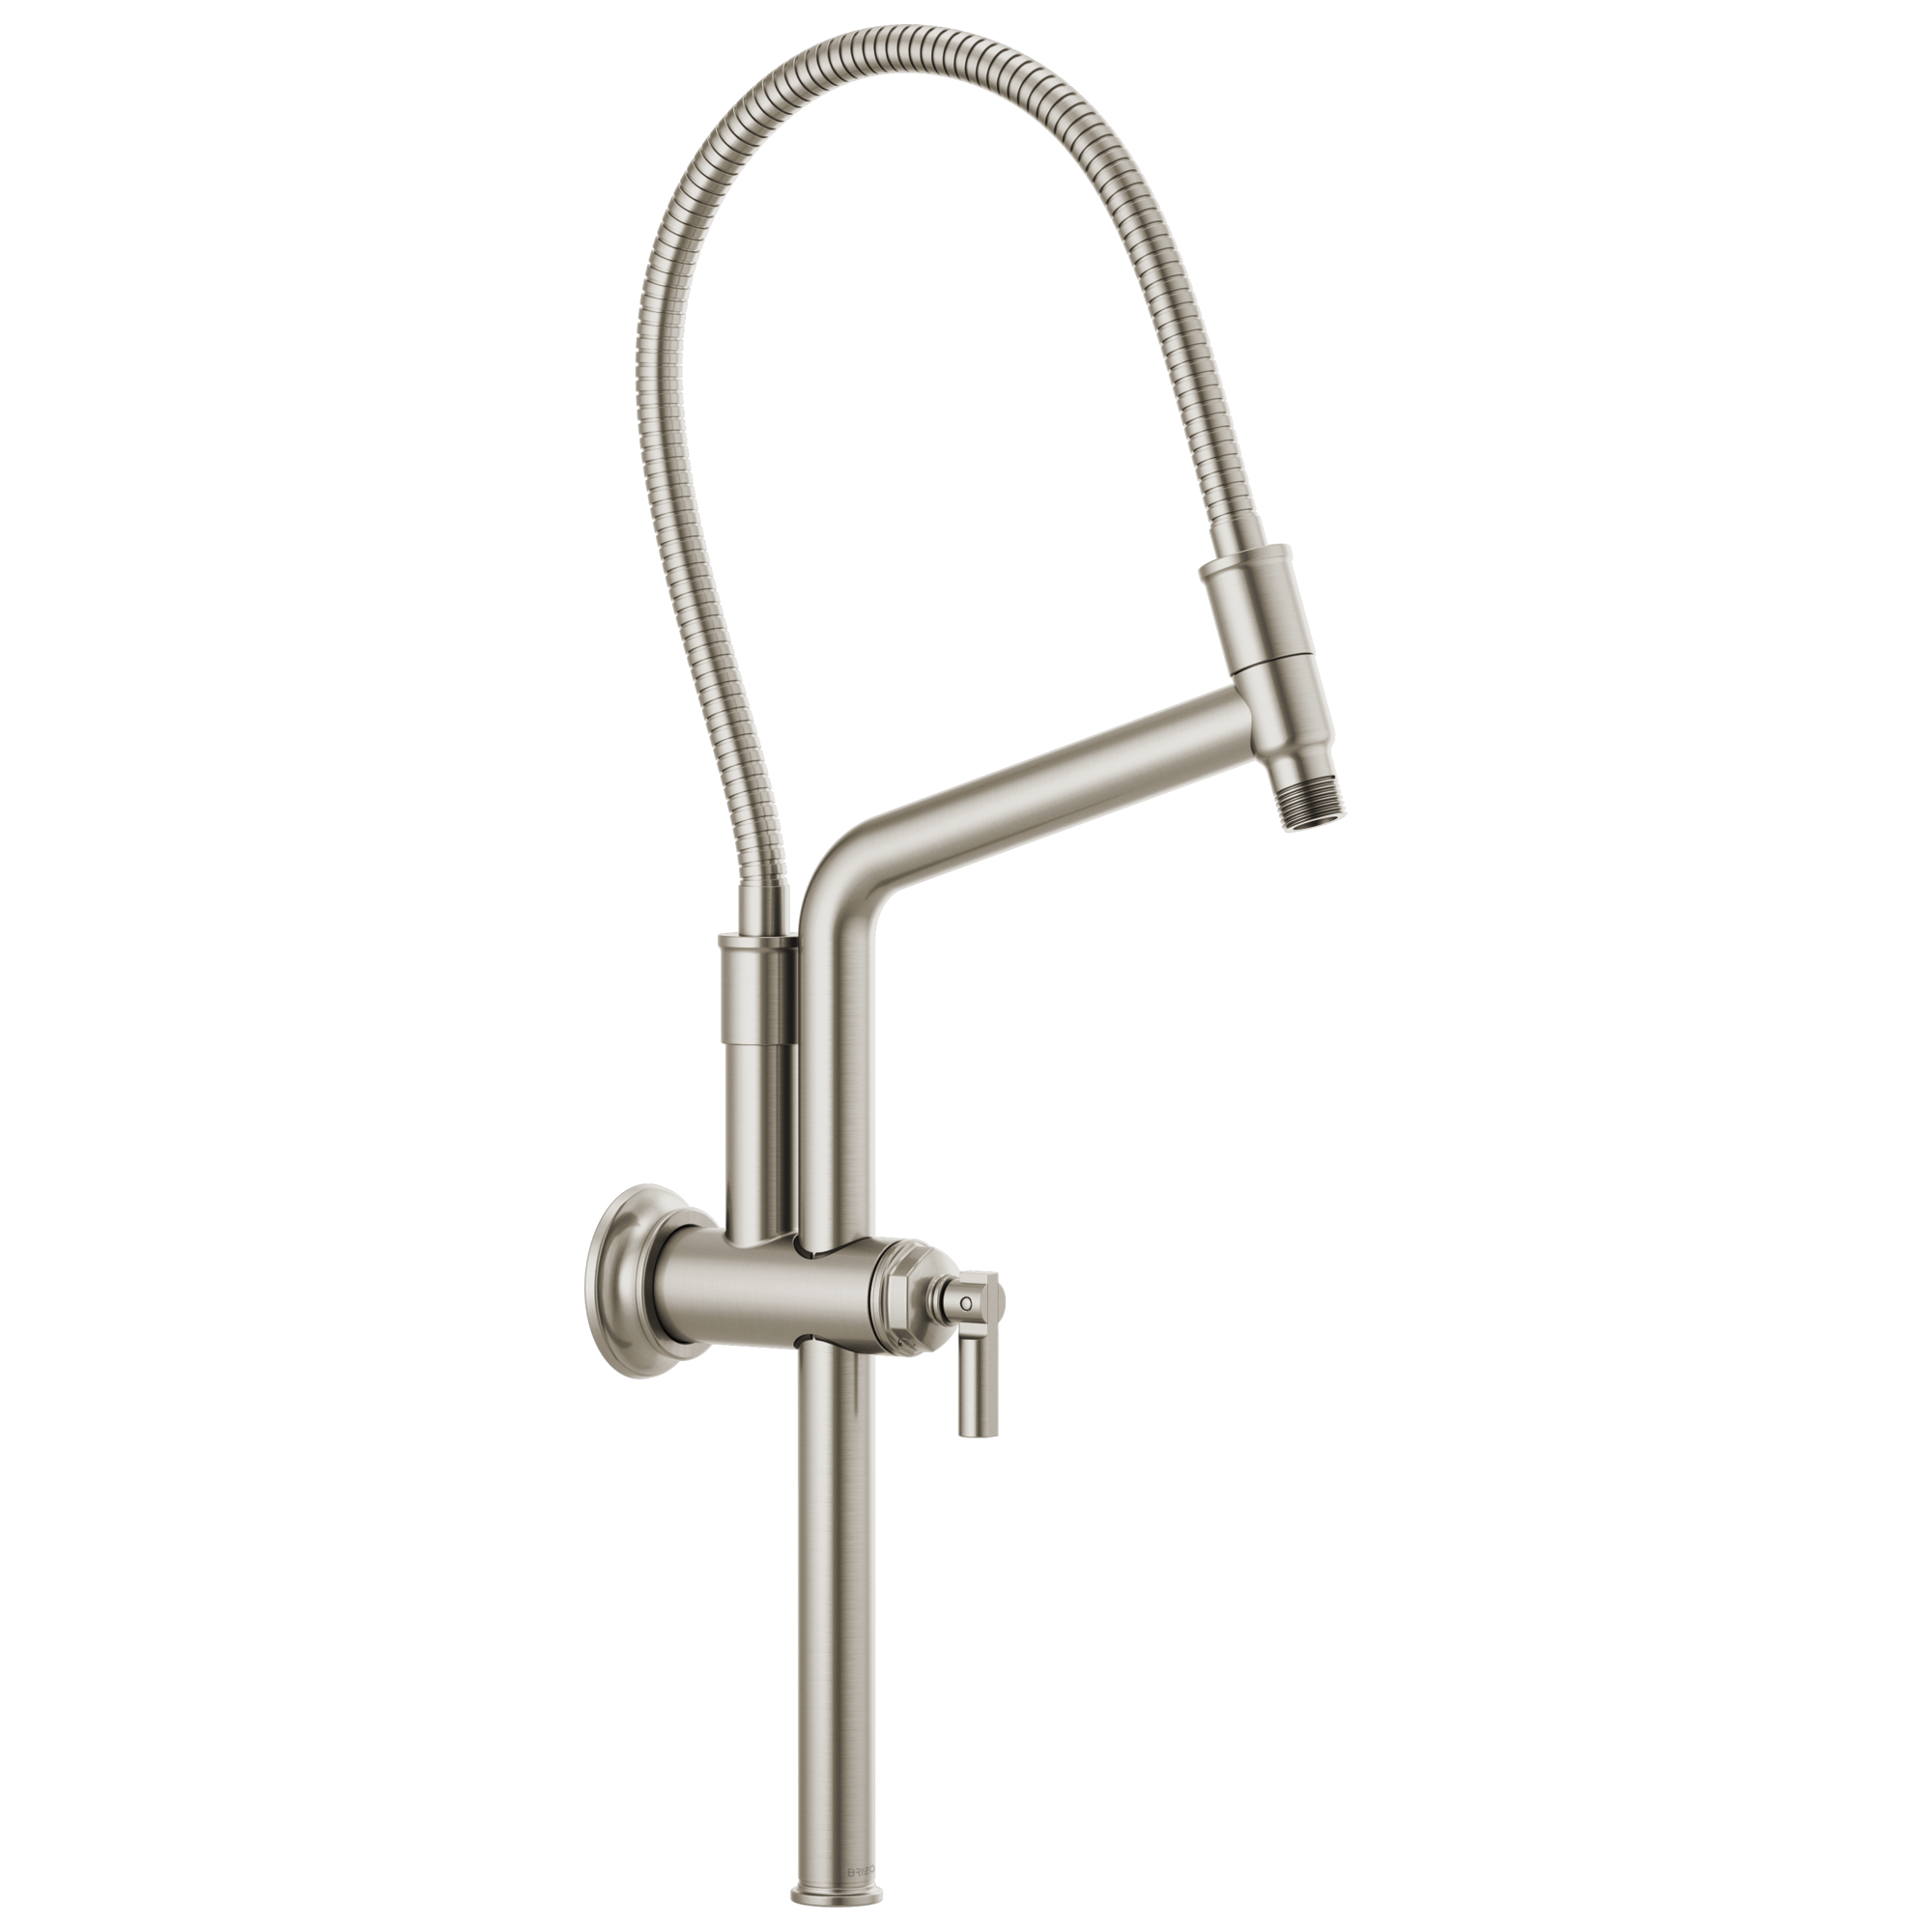 "Brizo 81376-NK Brizo Invari: 10 7/16"" Slide Bar Shower Arm And Flange - Luxe Nickel"